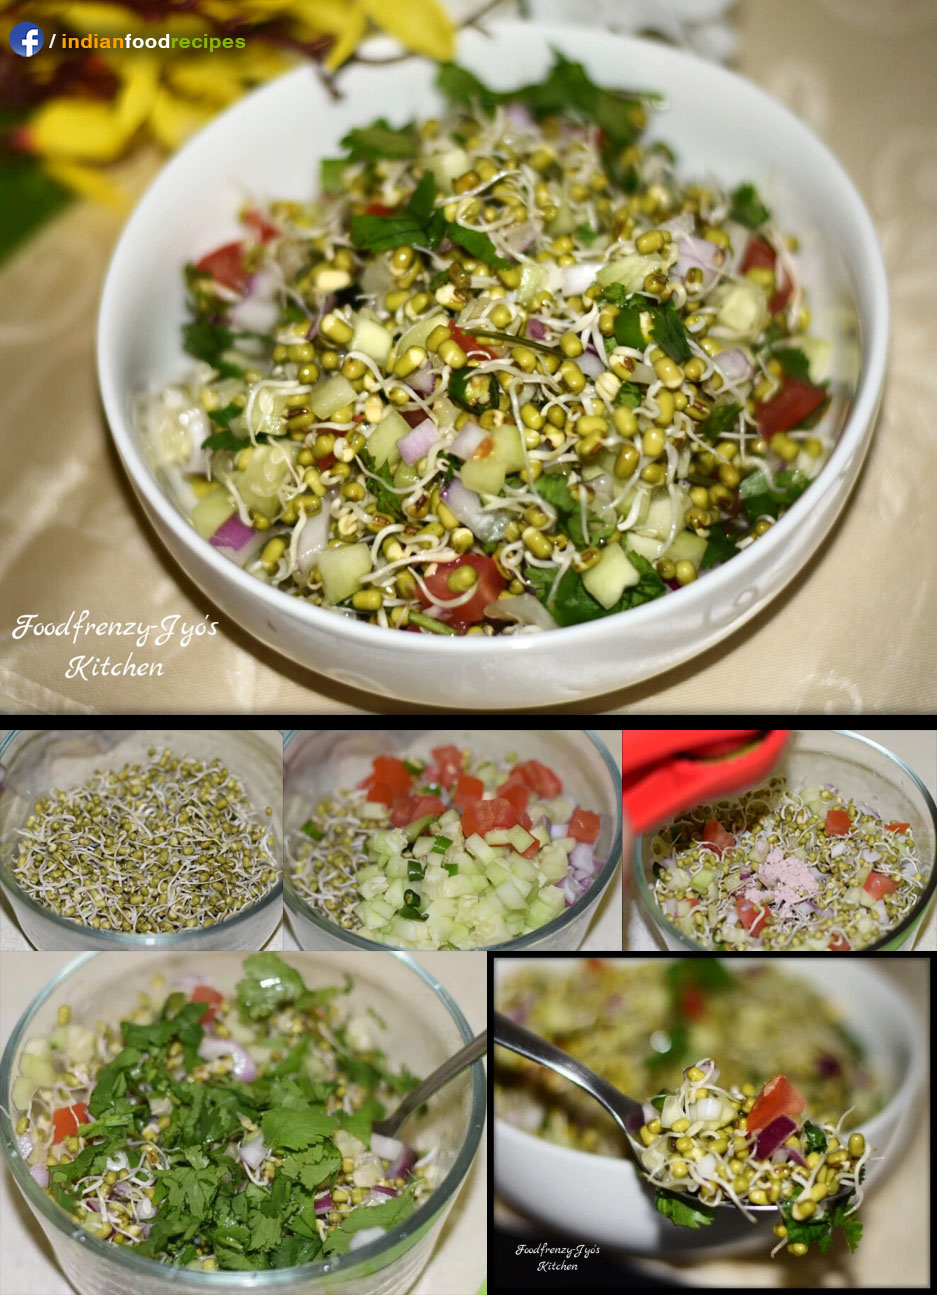 Sprouted Moong Salad recipe step by step